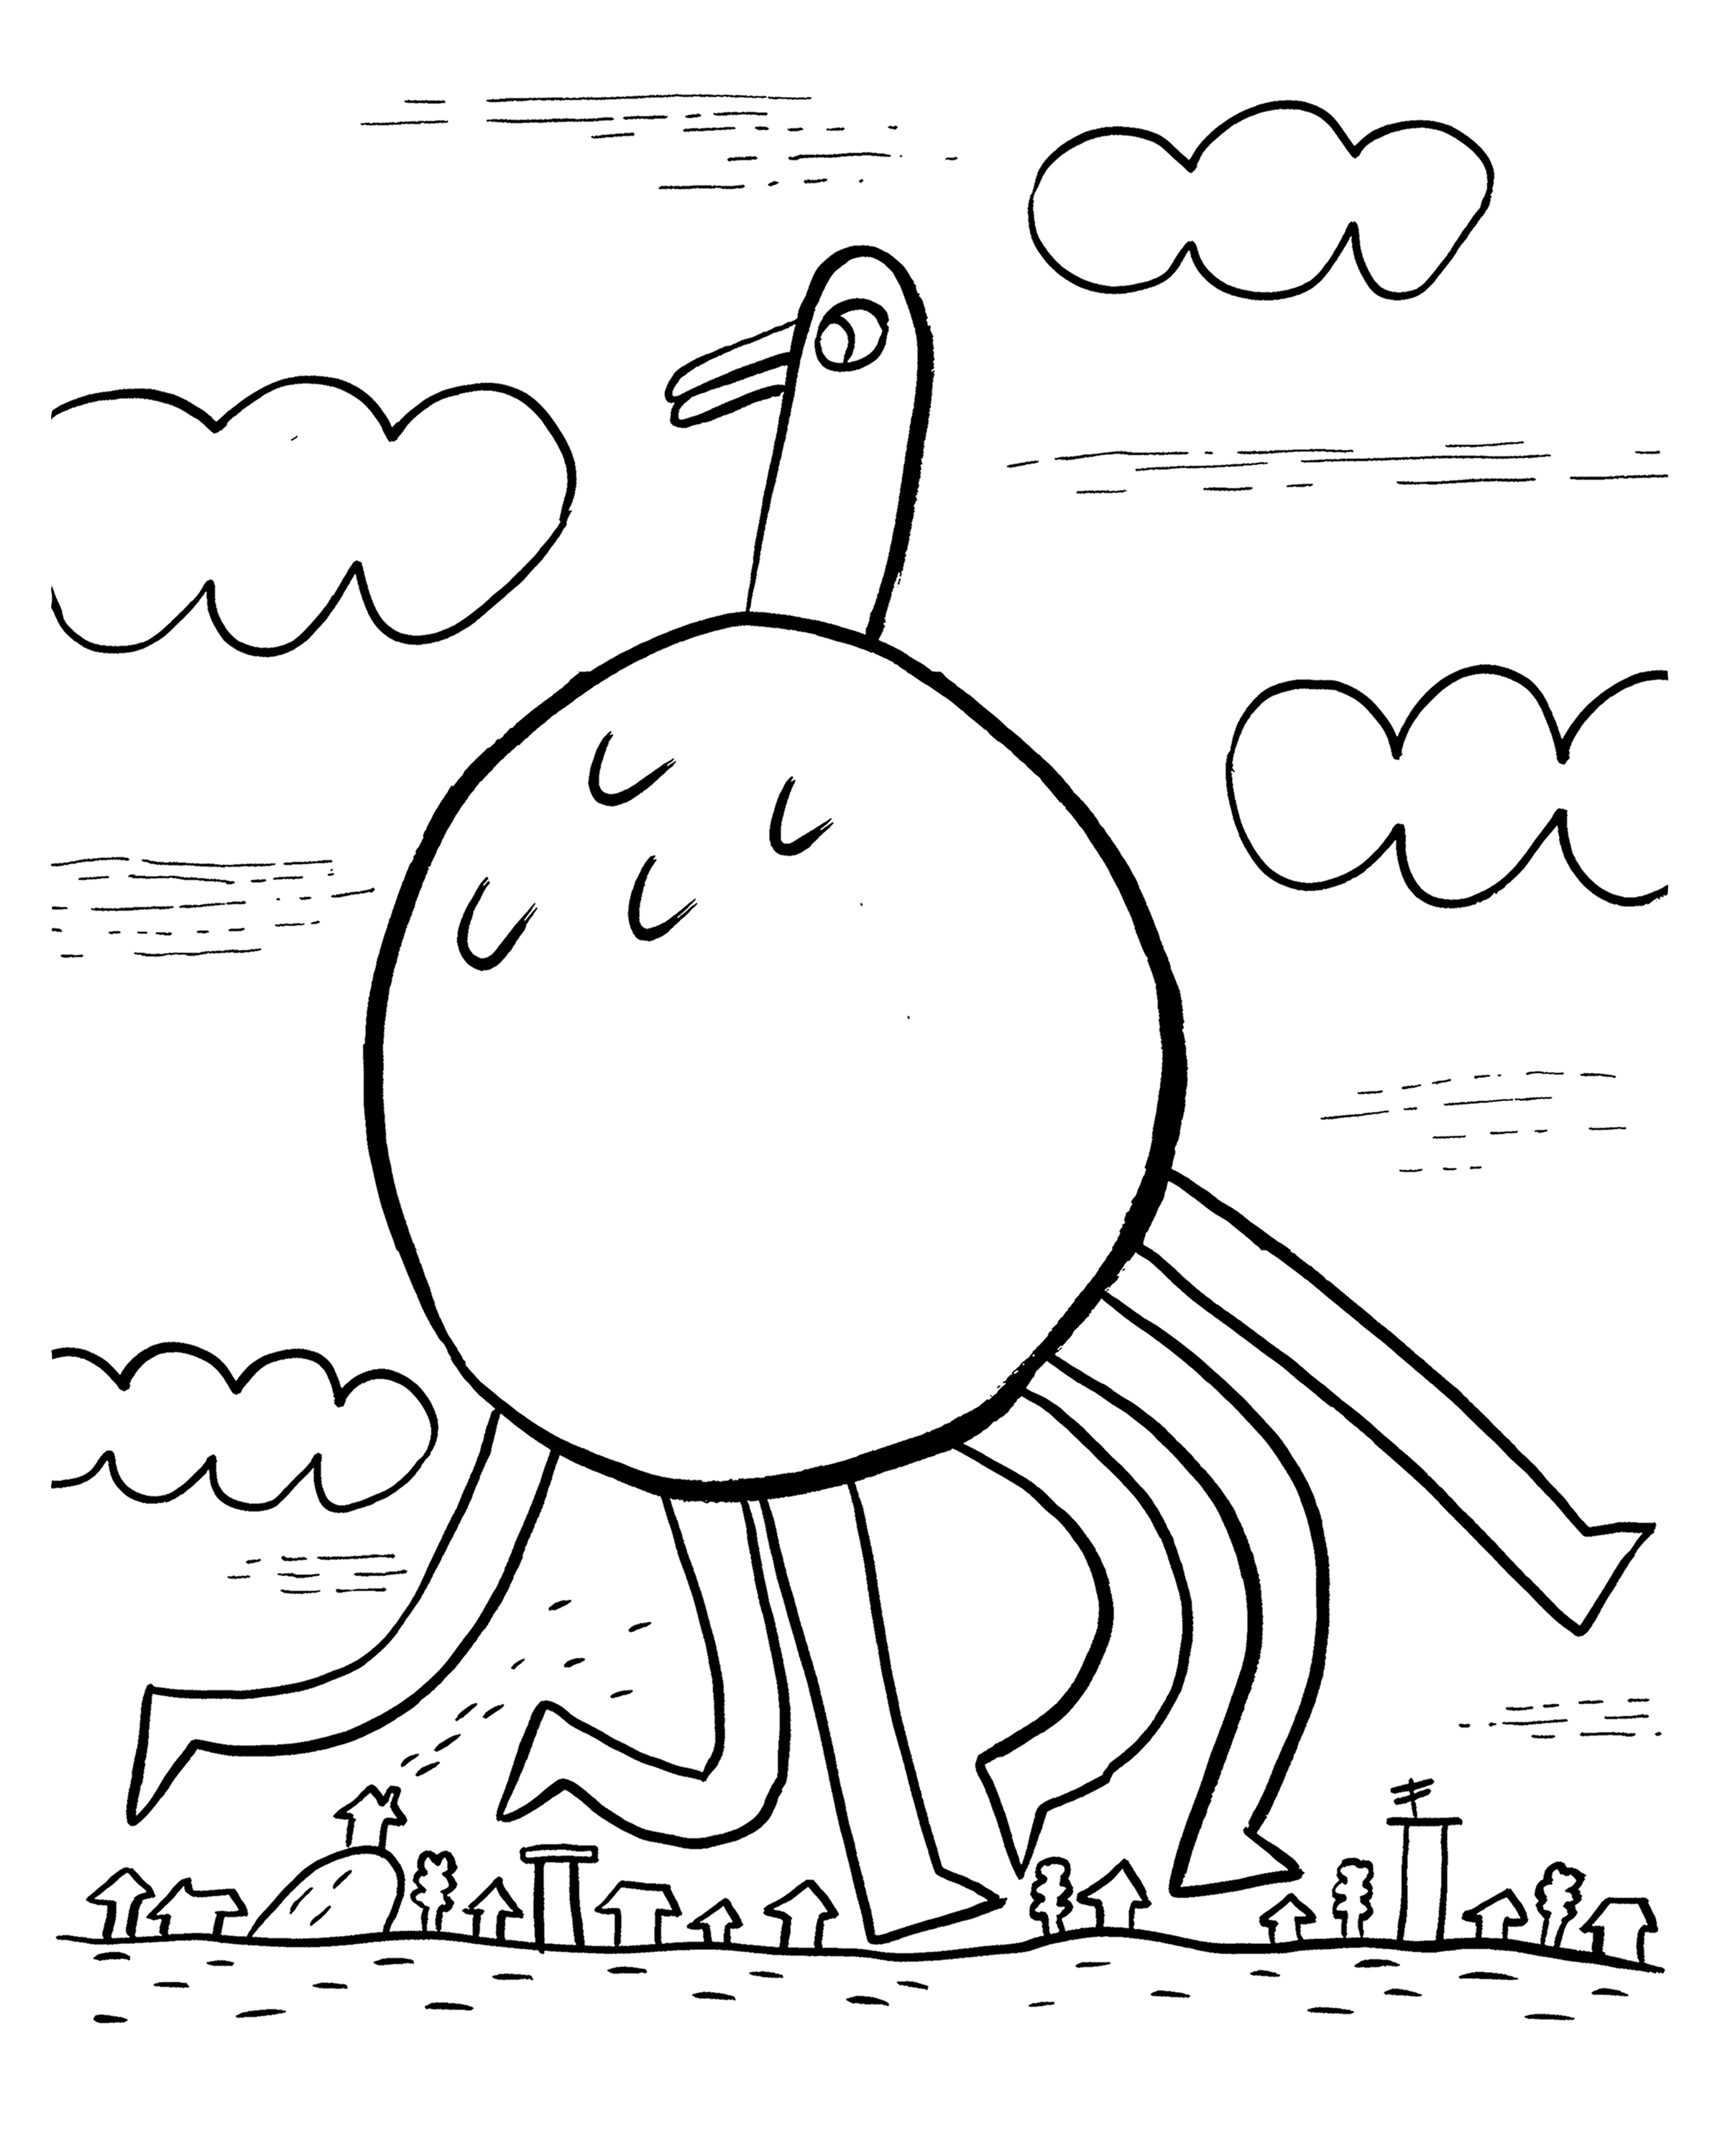 Images of coloring book pages